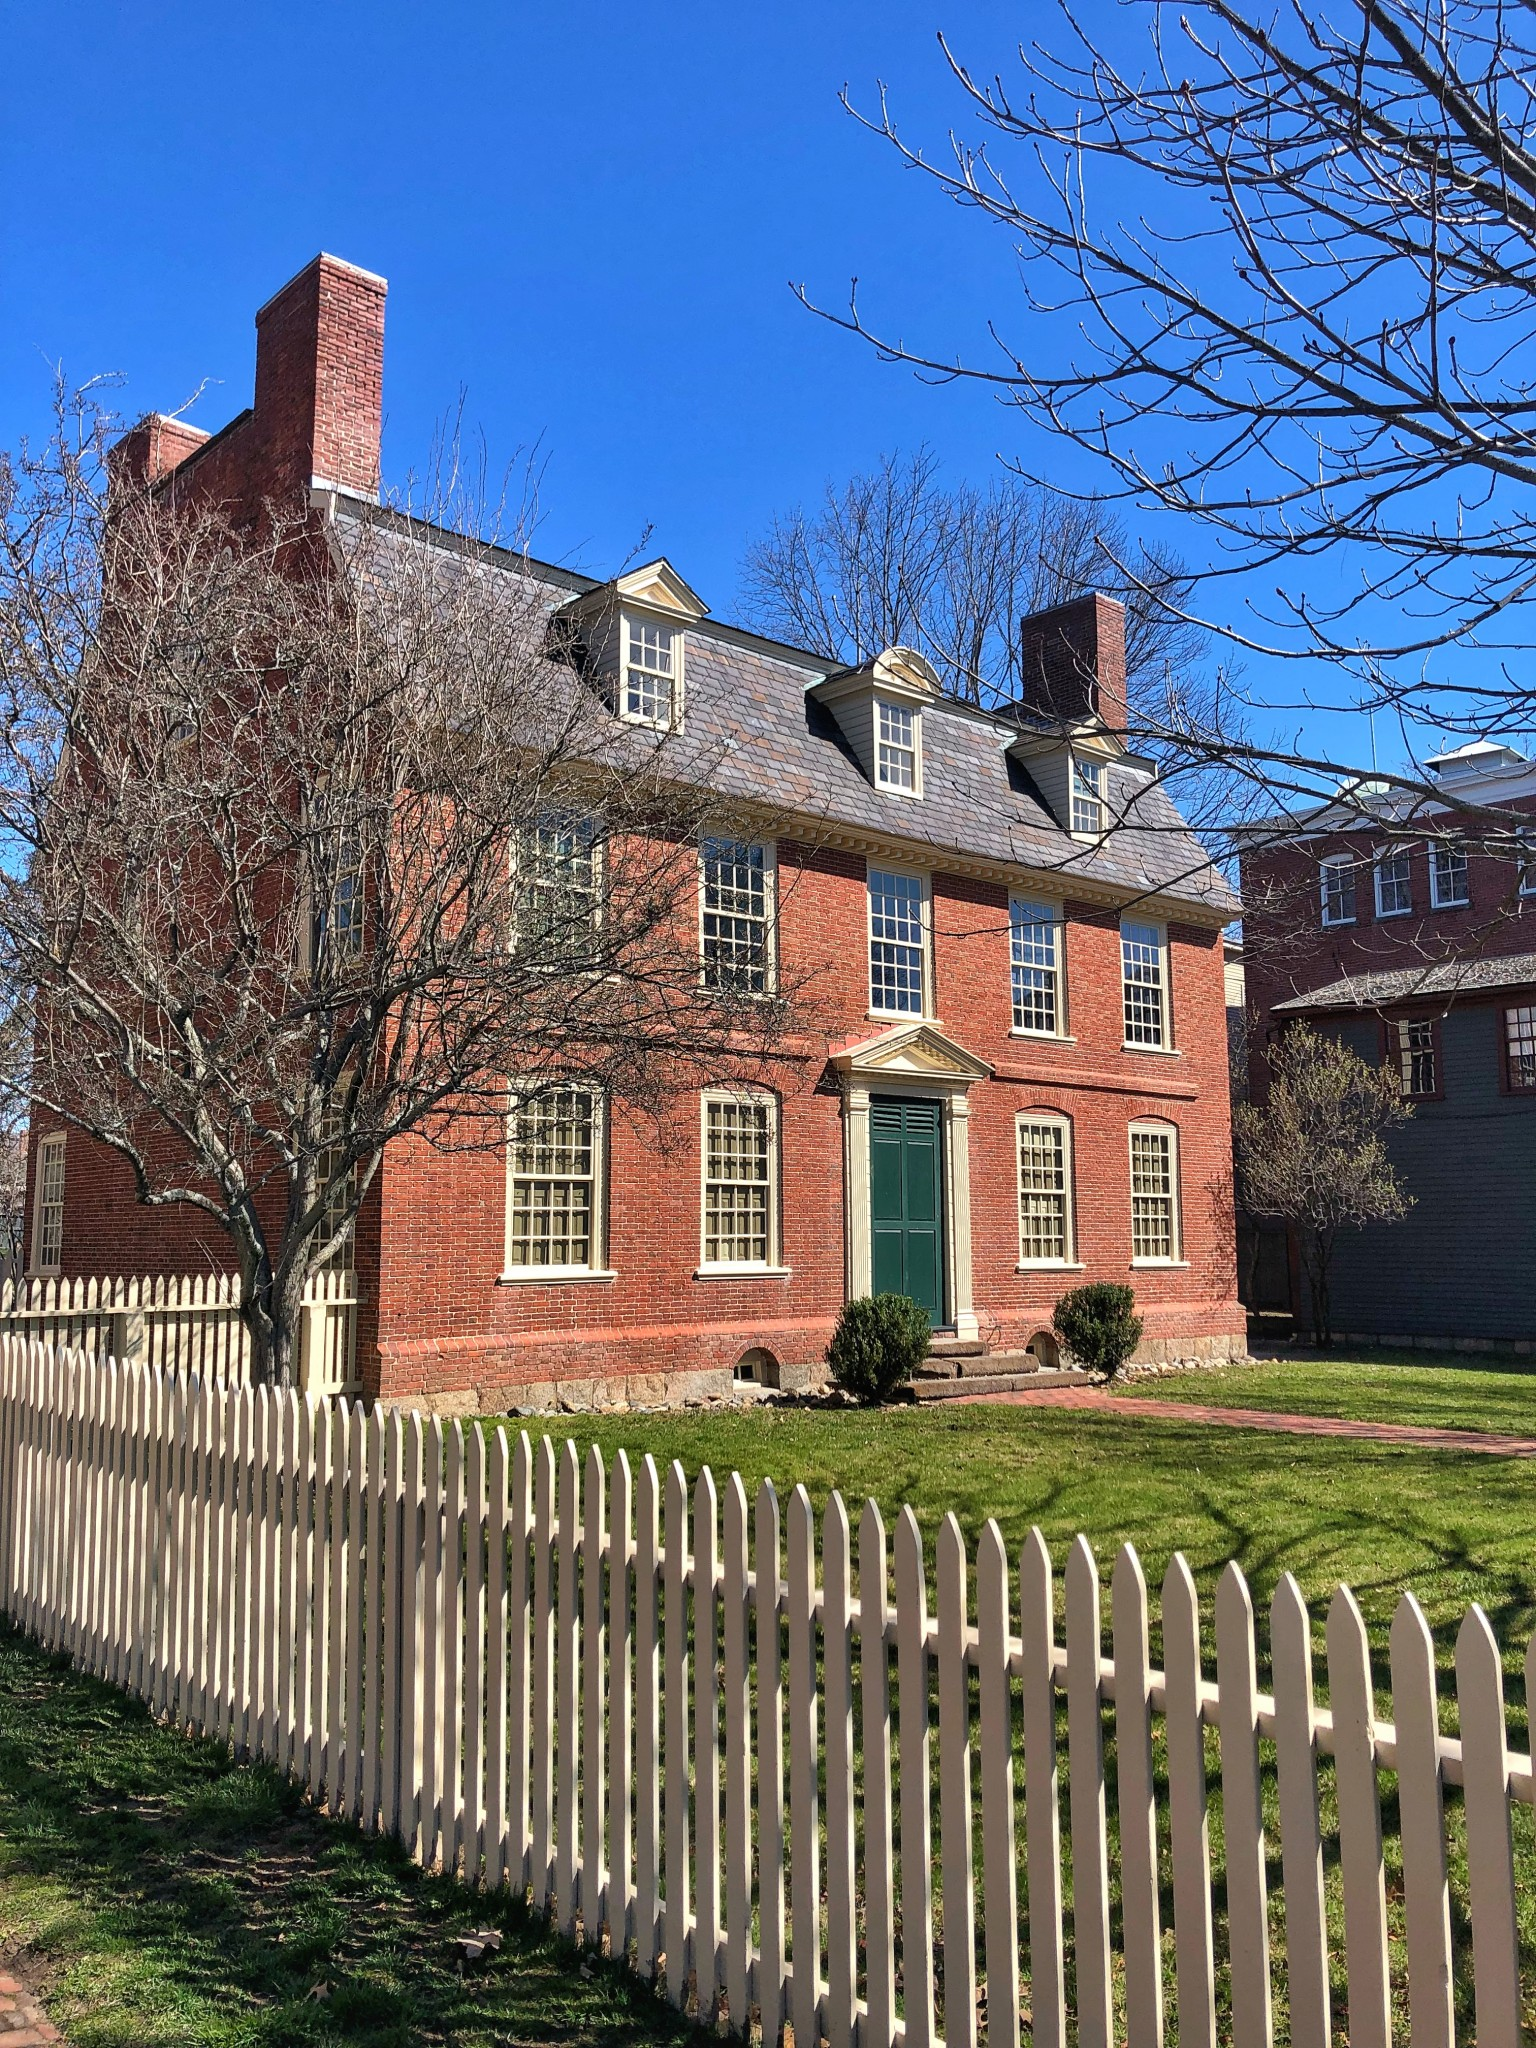 Derby House, salem, massachusetts, the-alyst.com